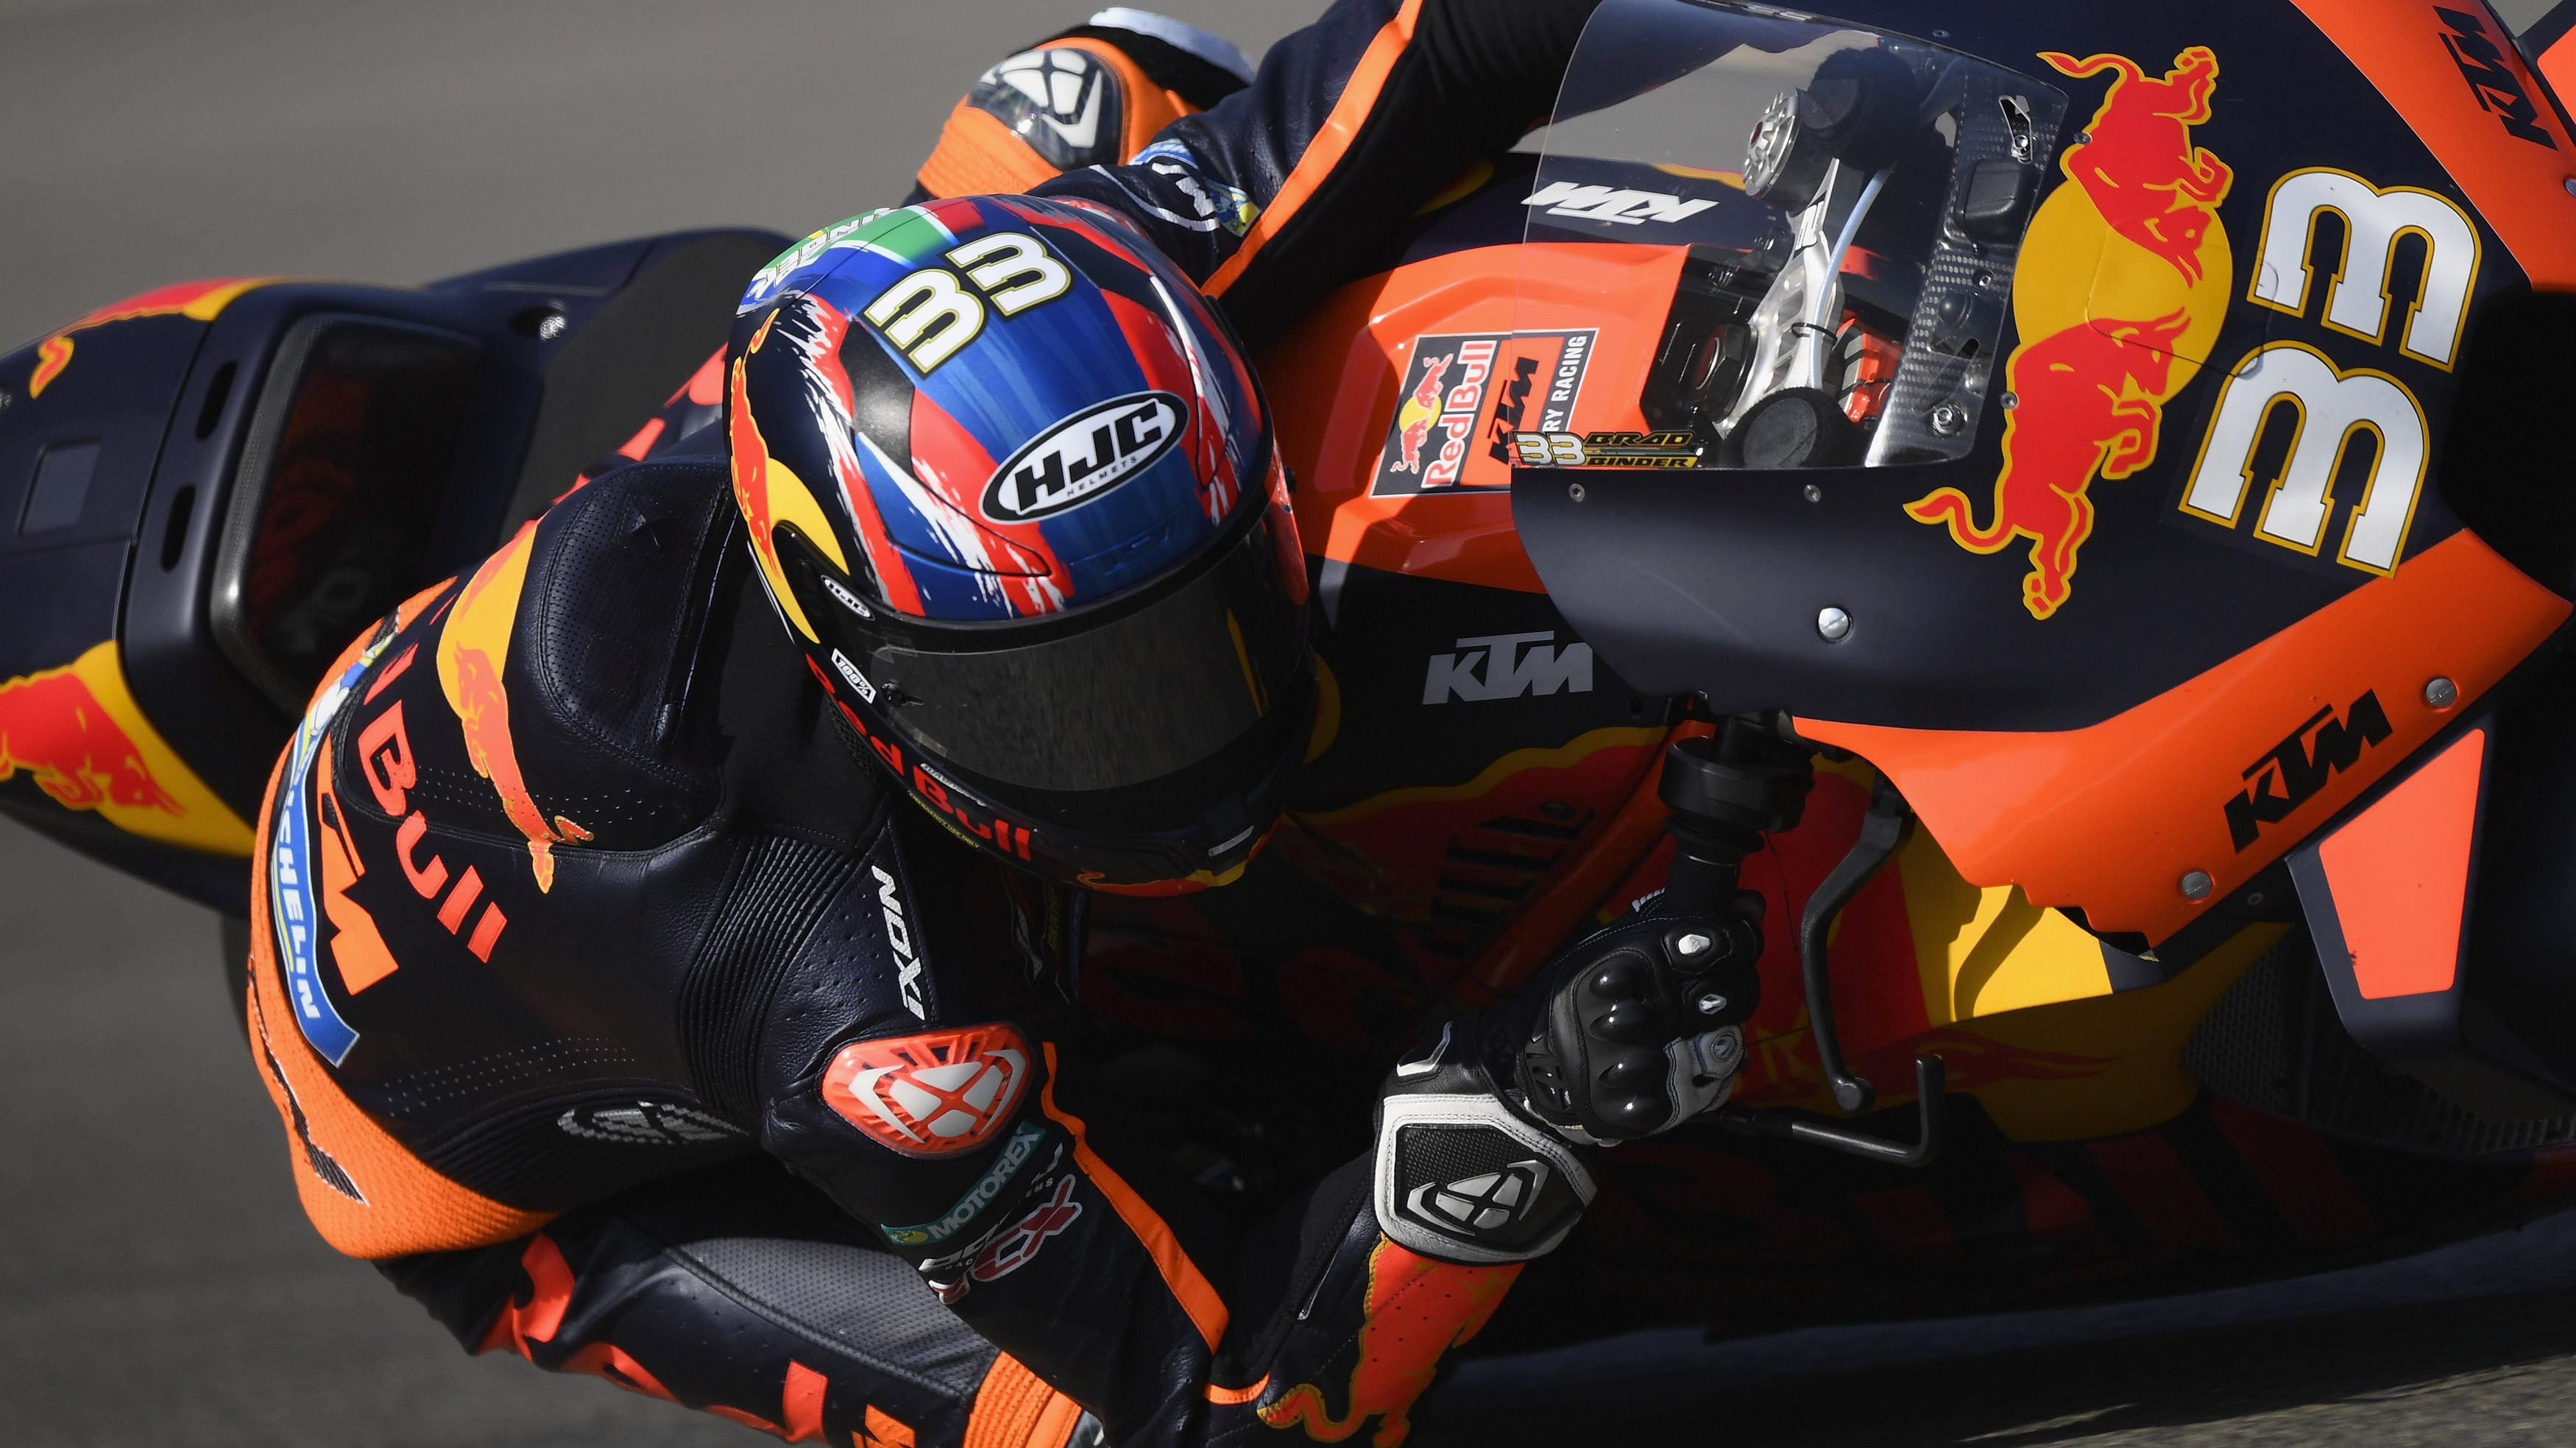 Motogp Brad Binder Victory First For Ktm In Premier Class Nbc Sports